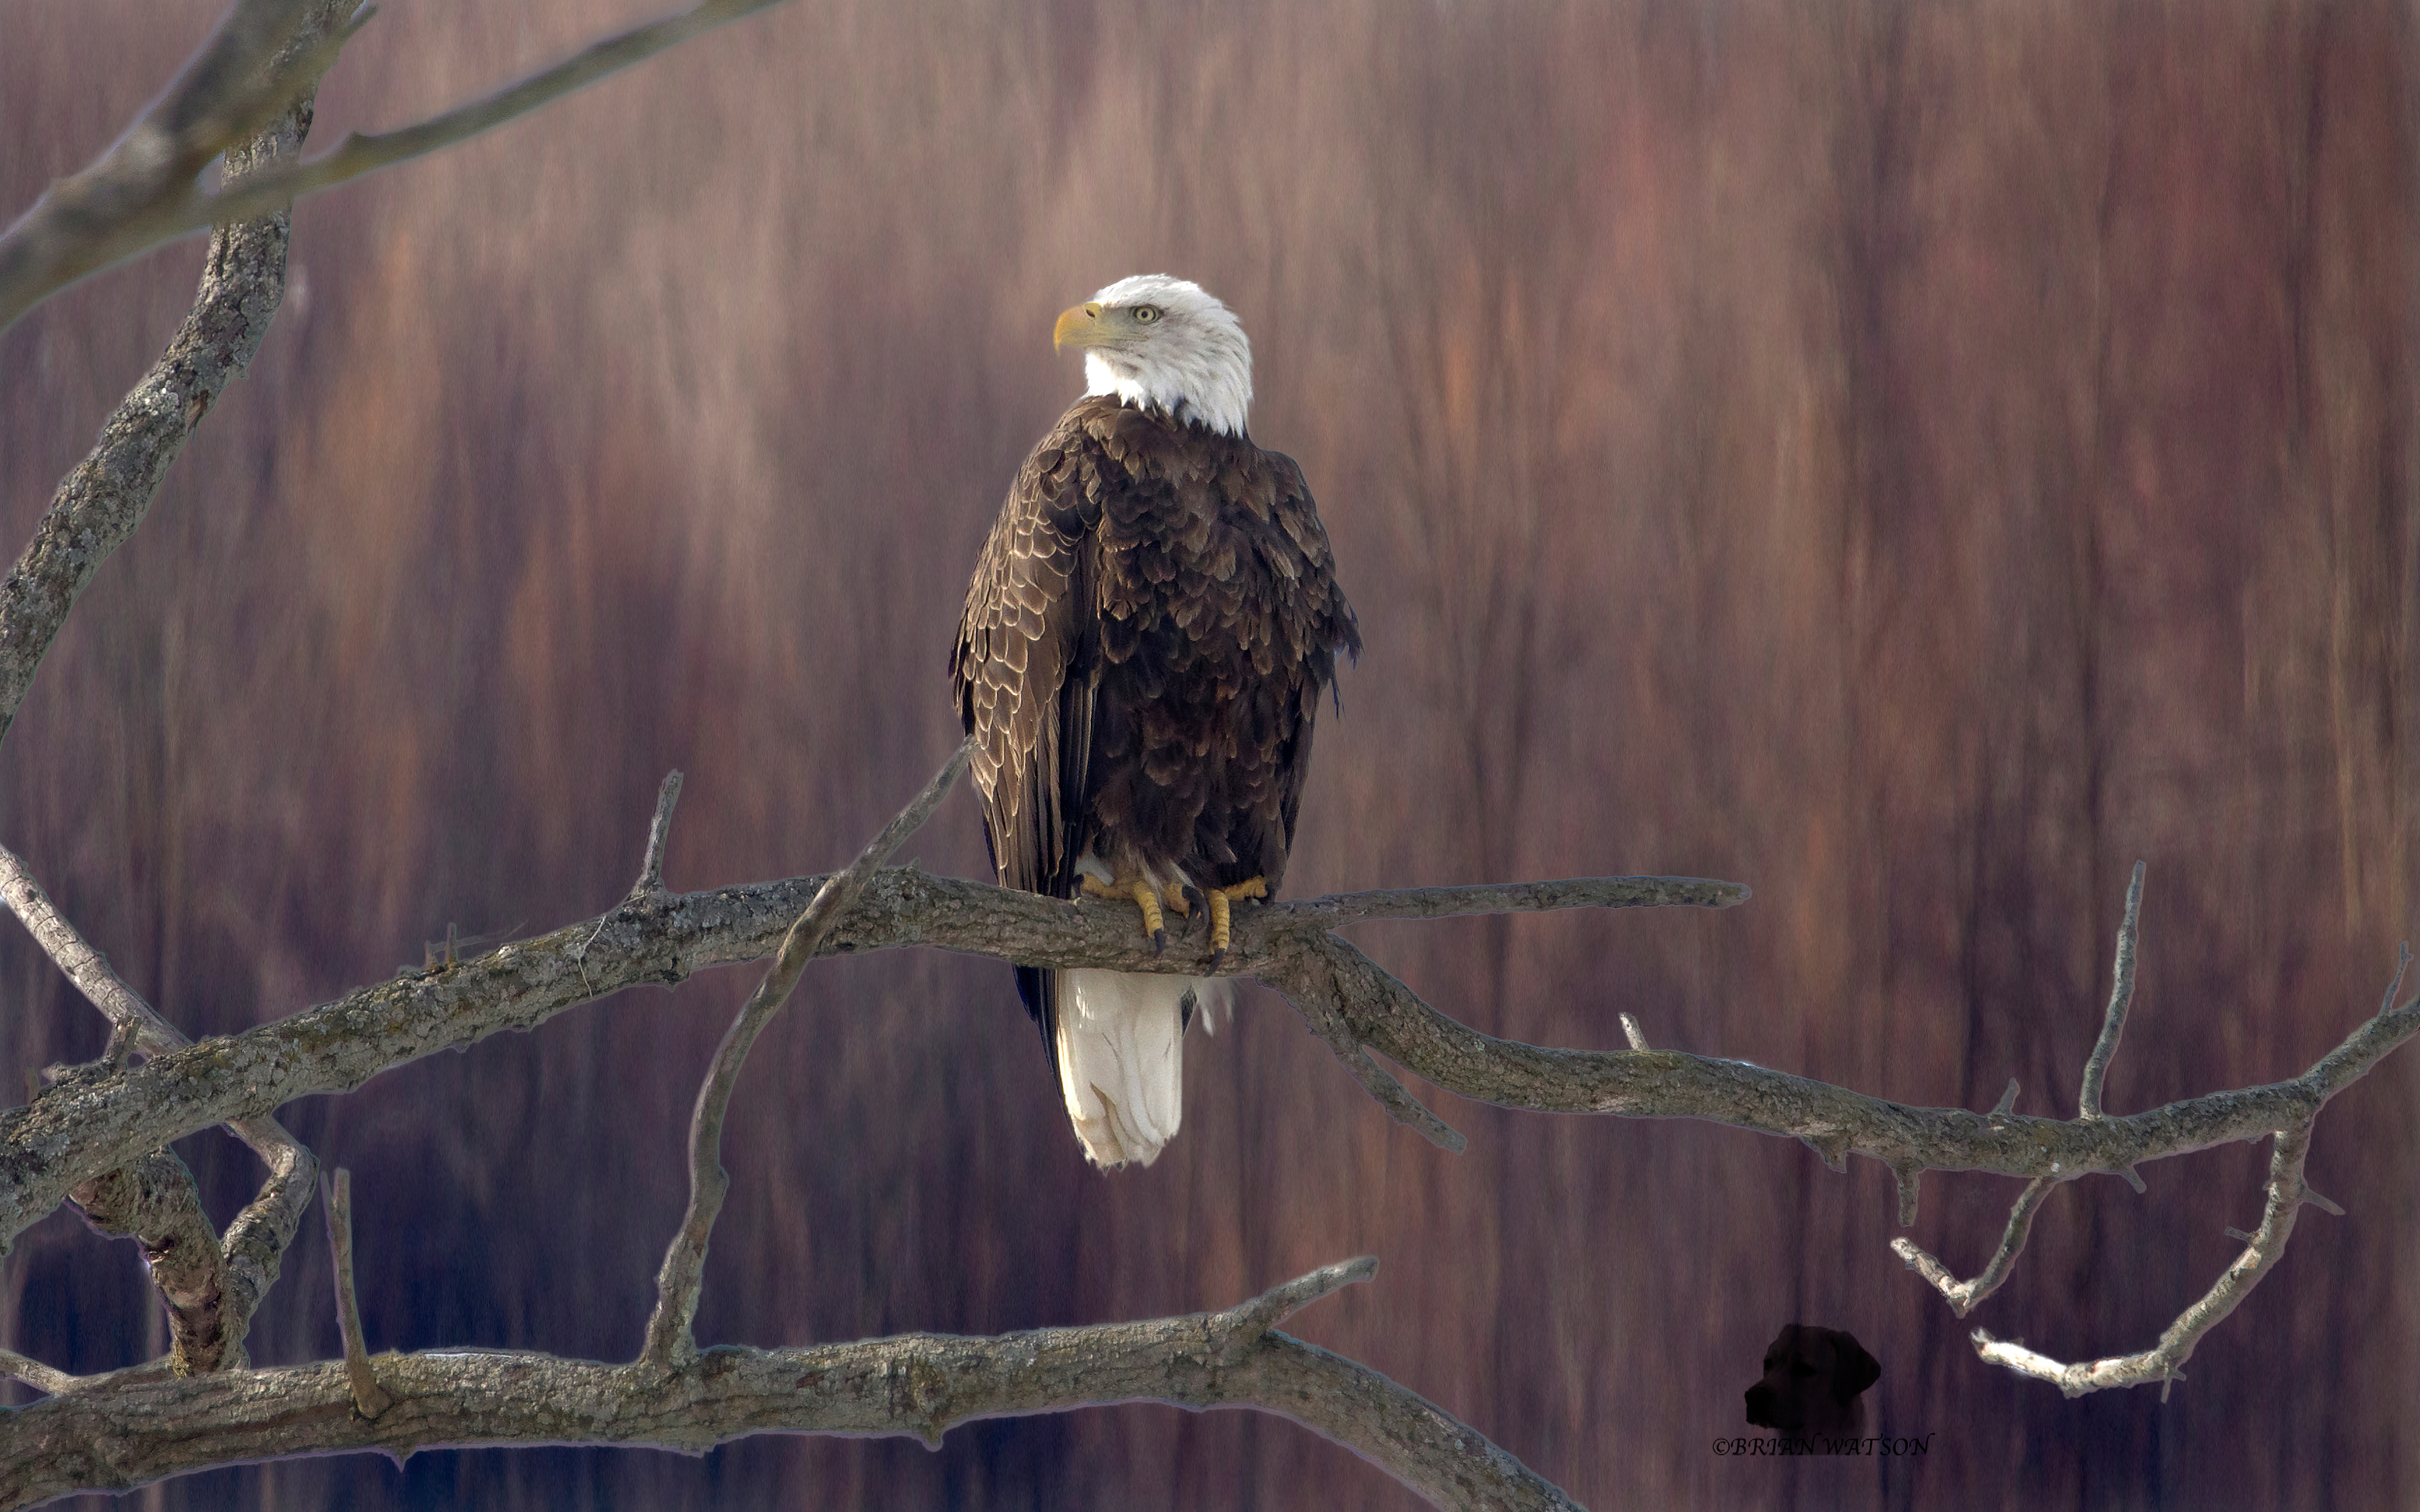 bald-eagle-sitting-on-branch-5k-jh.jpg